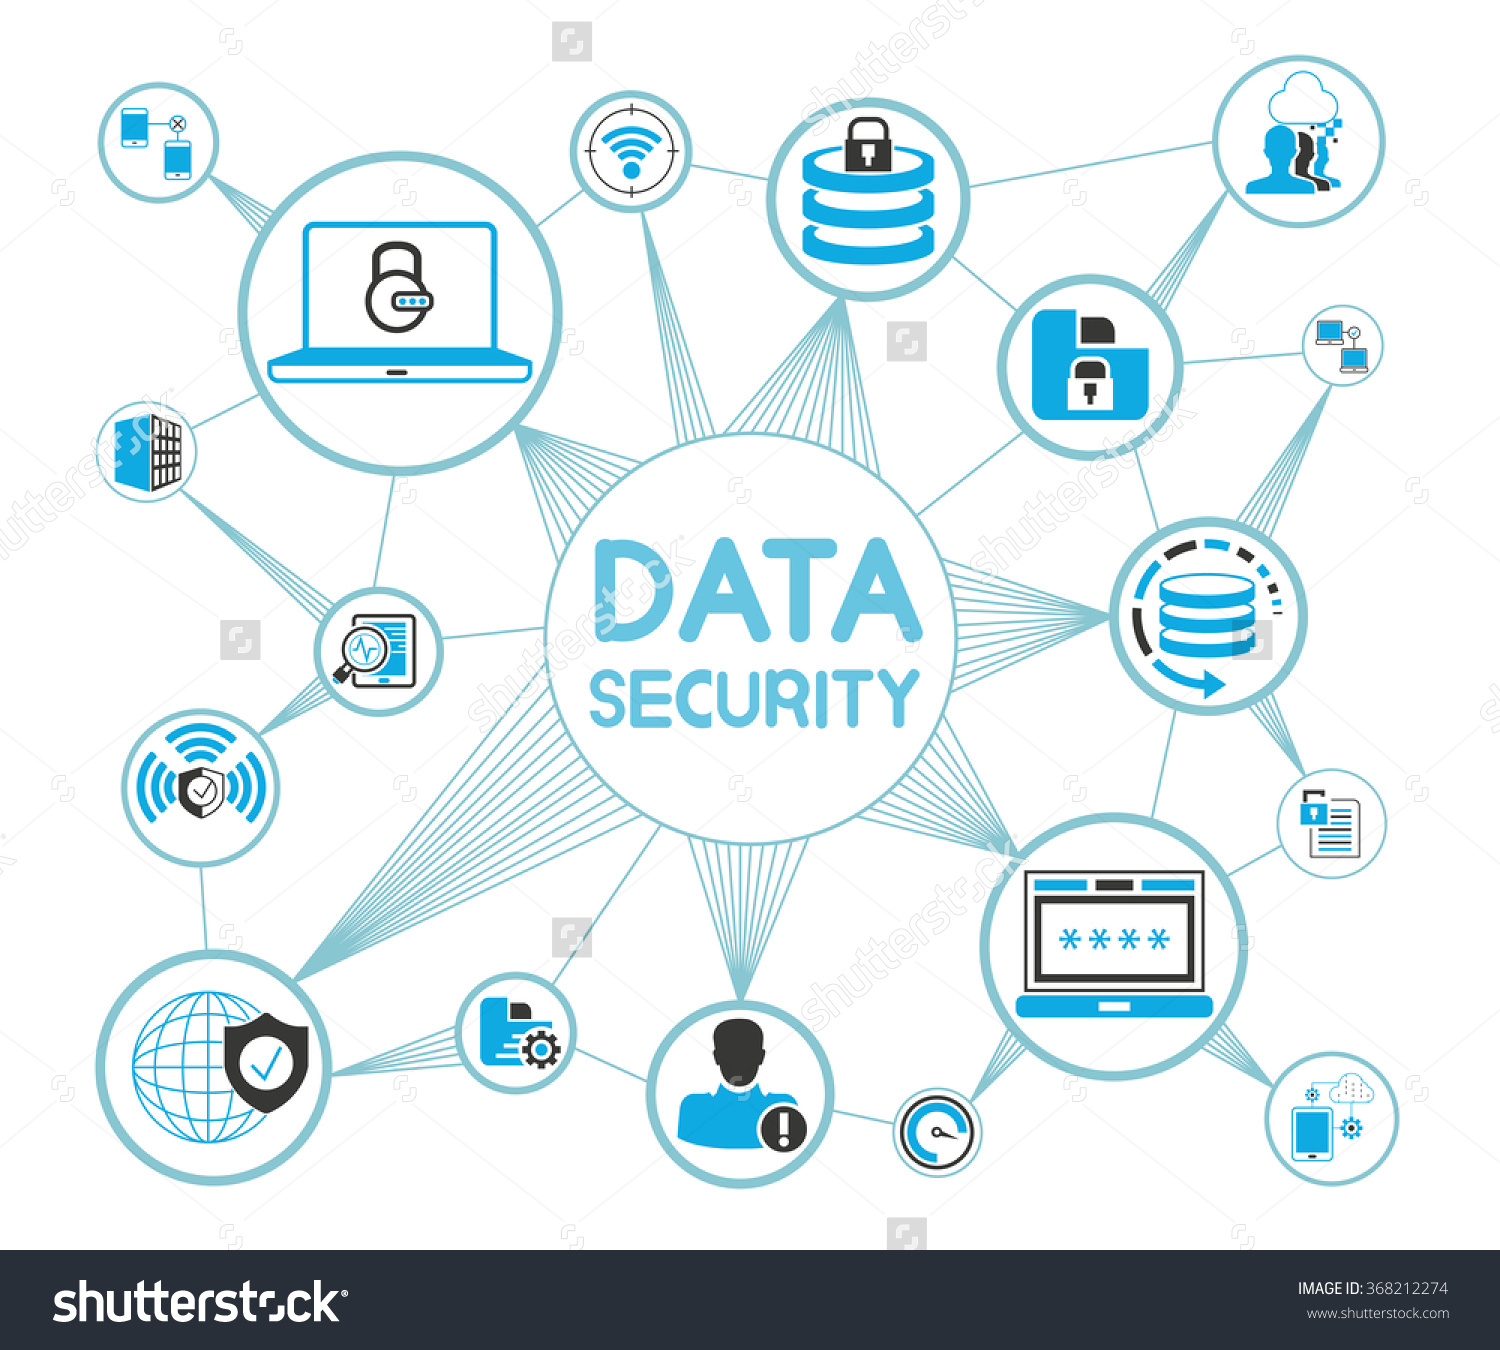 Document Data Security Accuimage New Test Threats Cyber